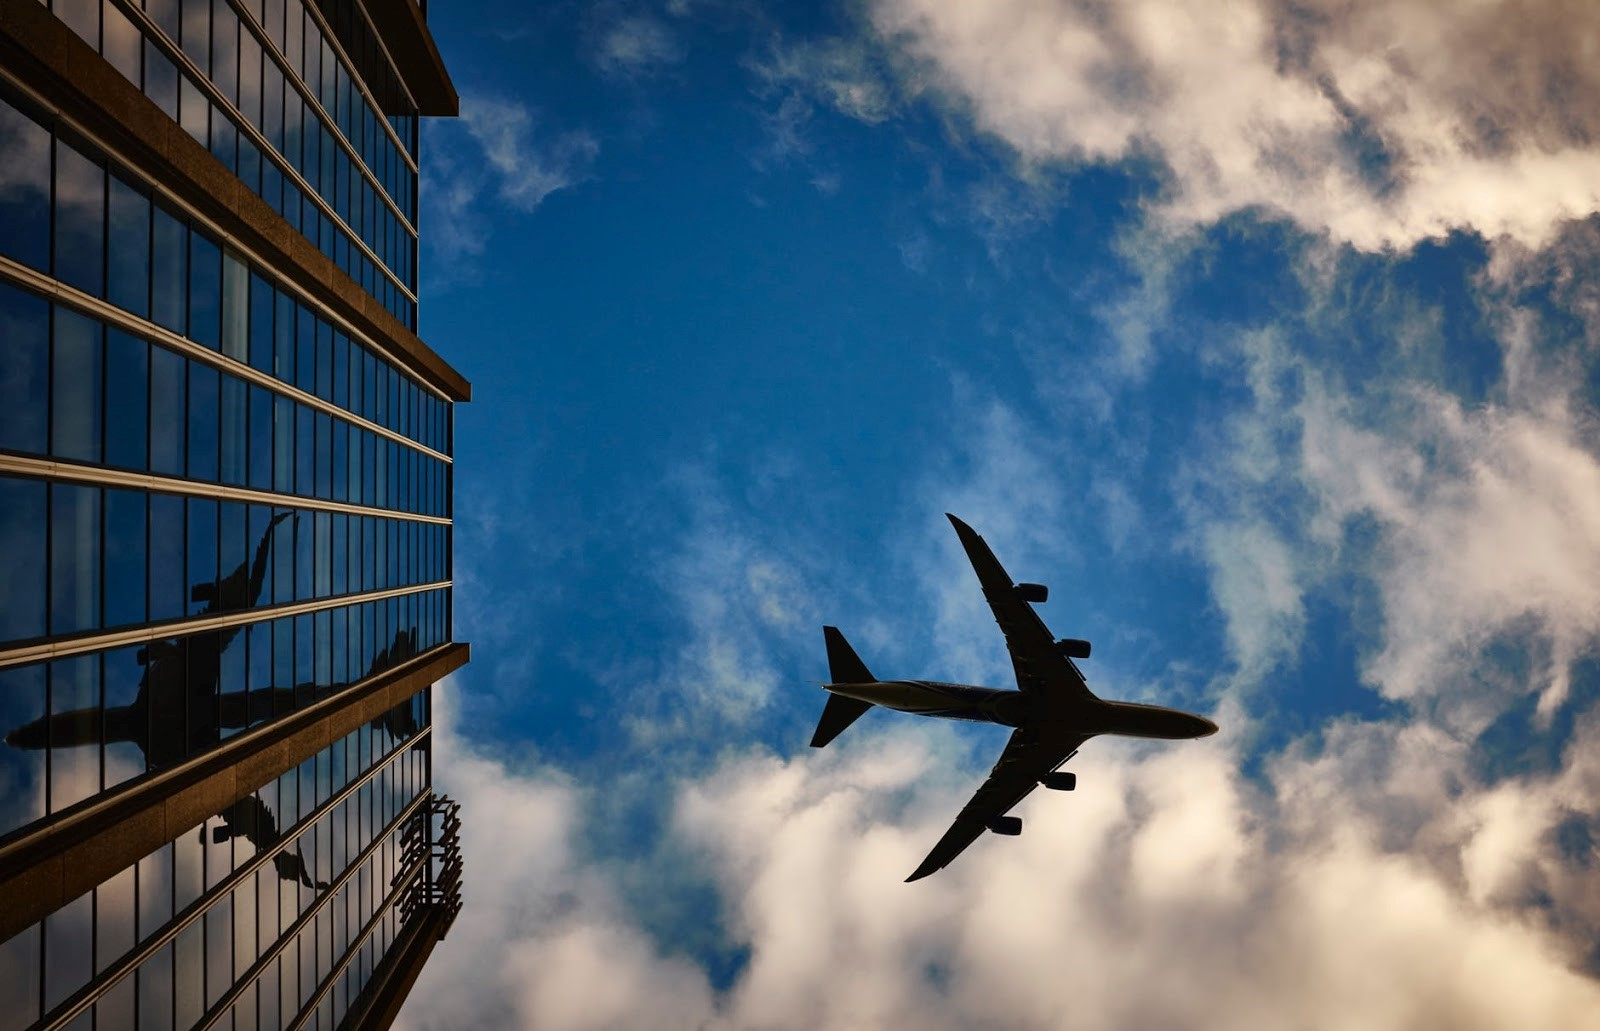 How safe is flying? Business traveler Fear of Flying